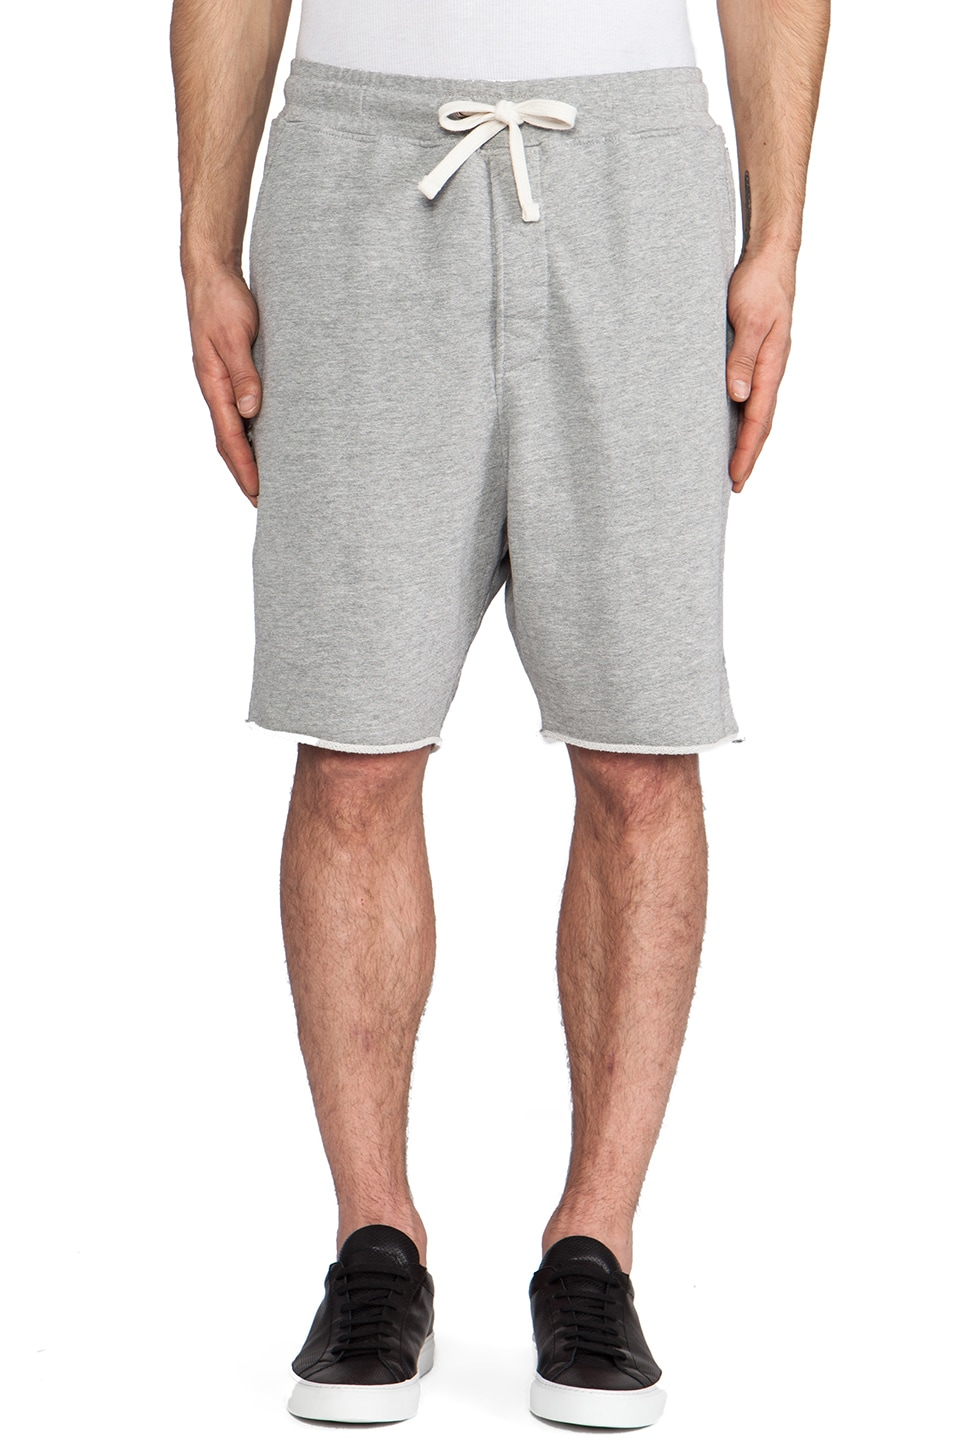 Drifter Hamilton Sweatshort in Heather Grey